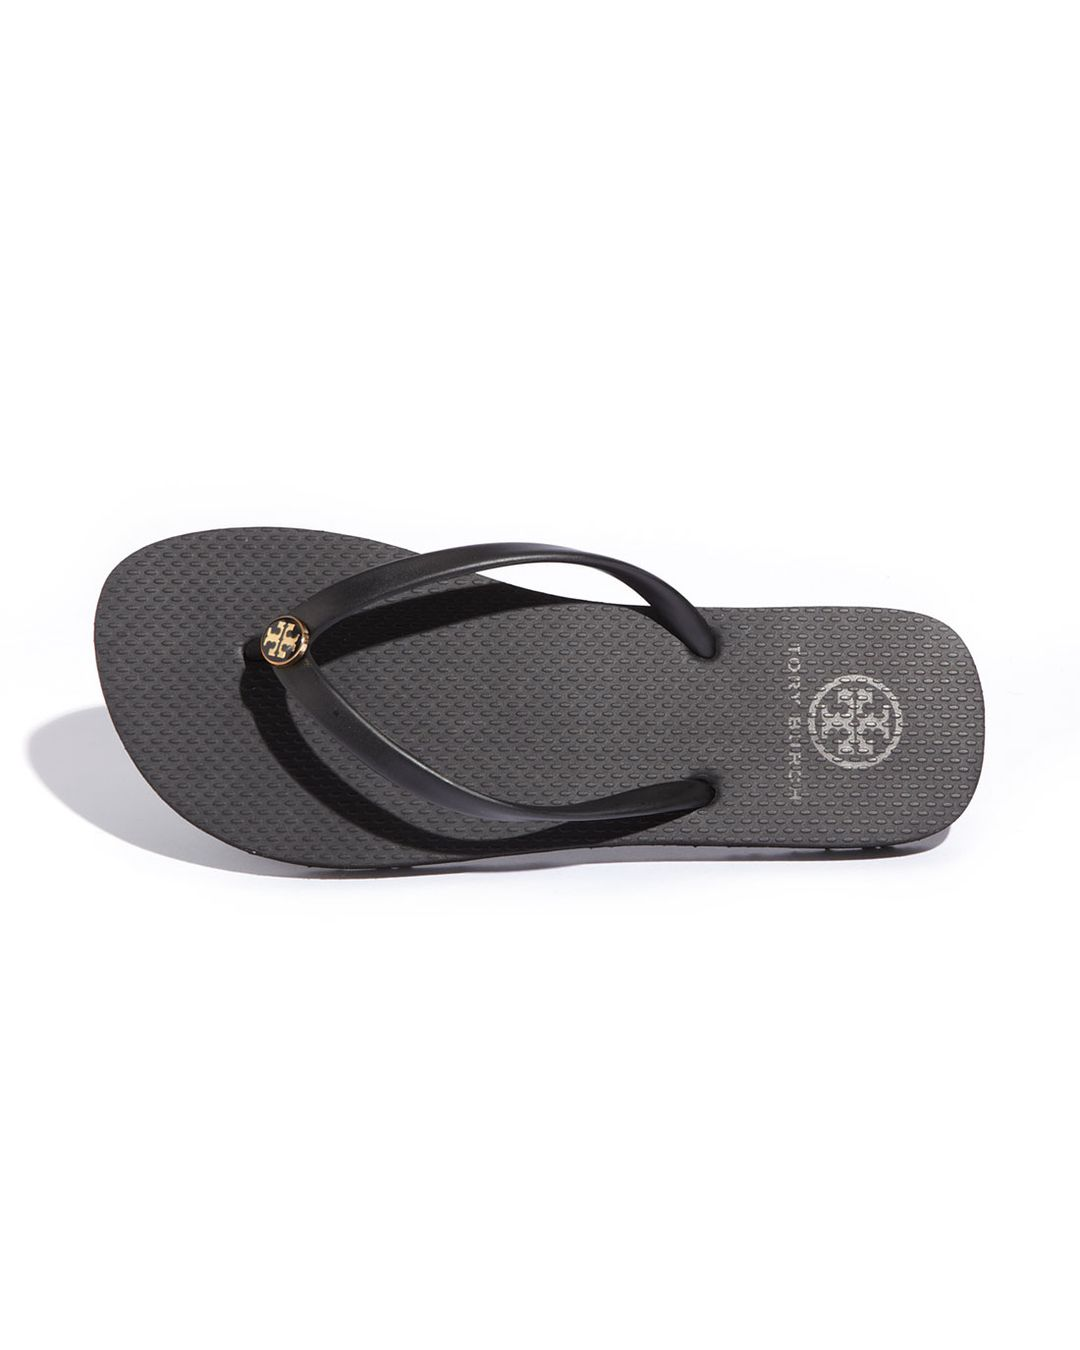 4b188b5d7fe55a Tory Burch Thin Flip Flop Reviews